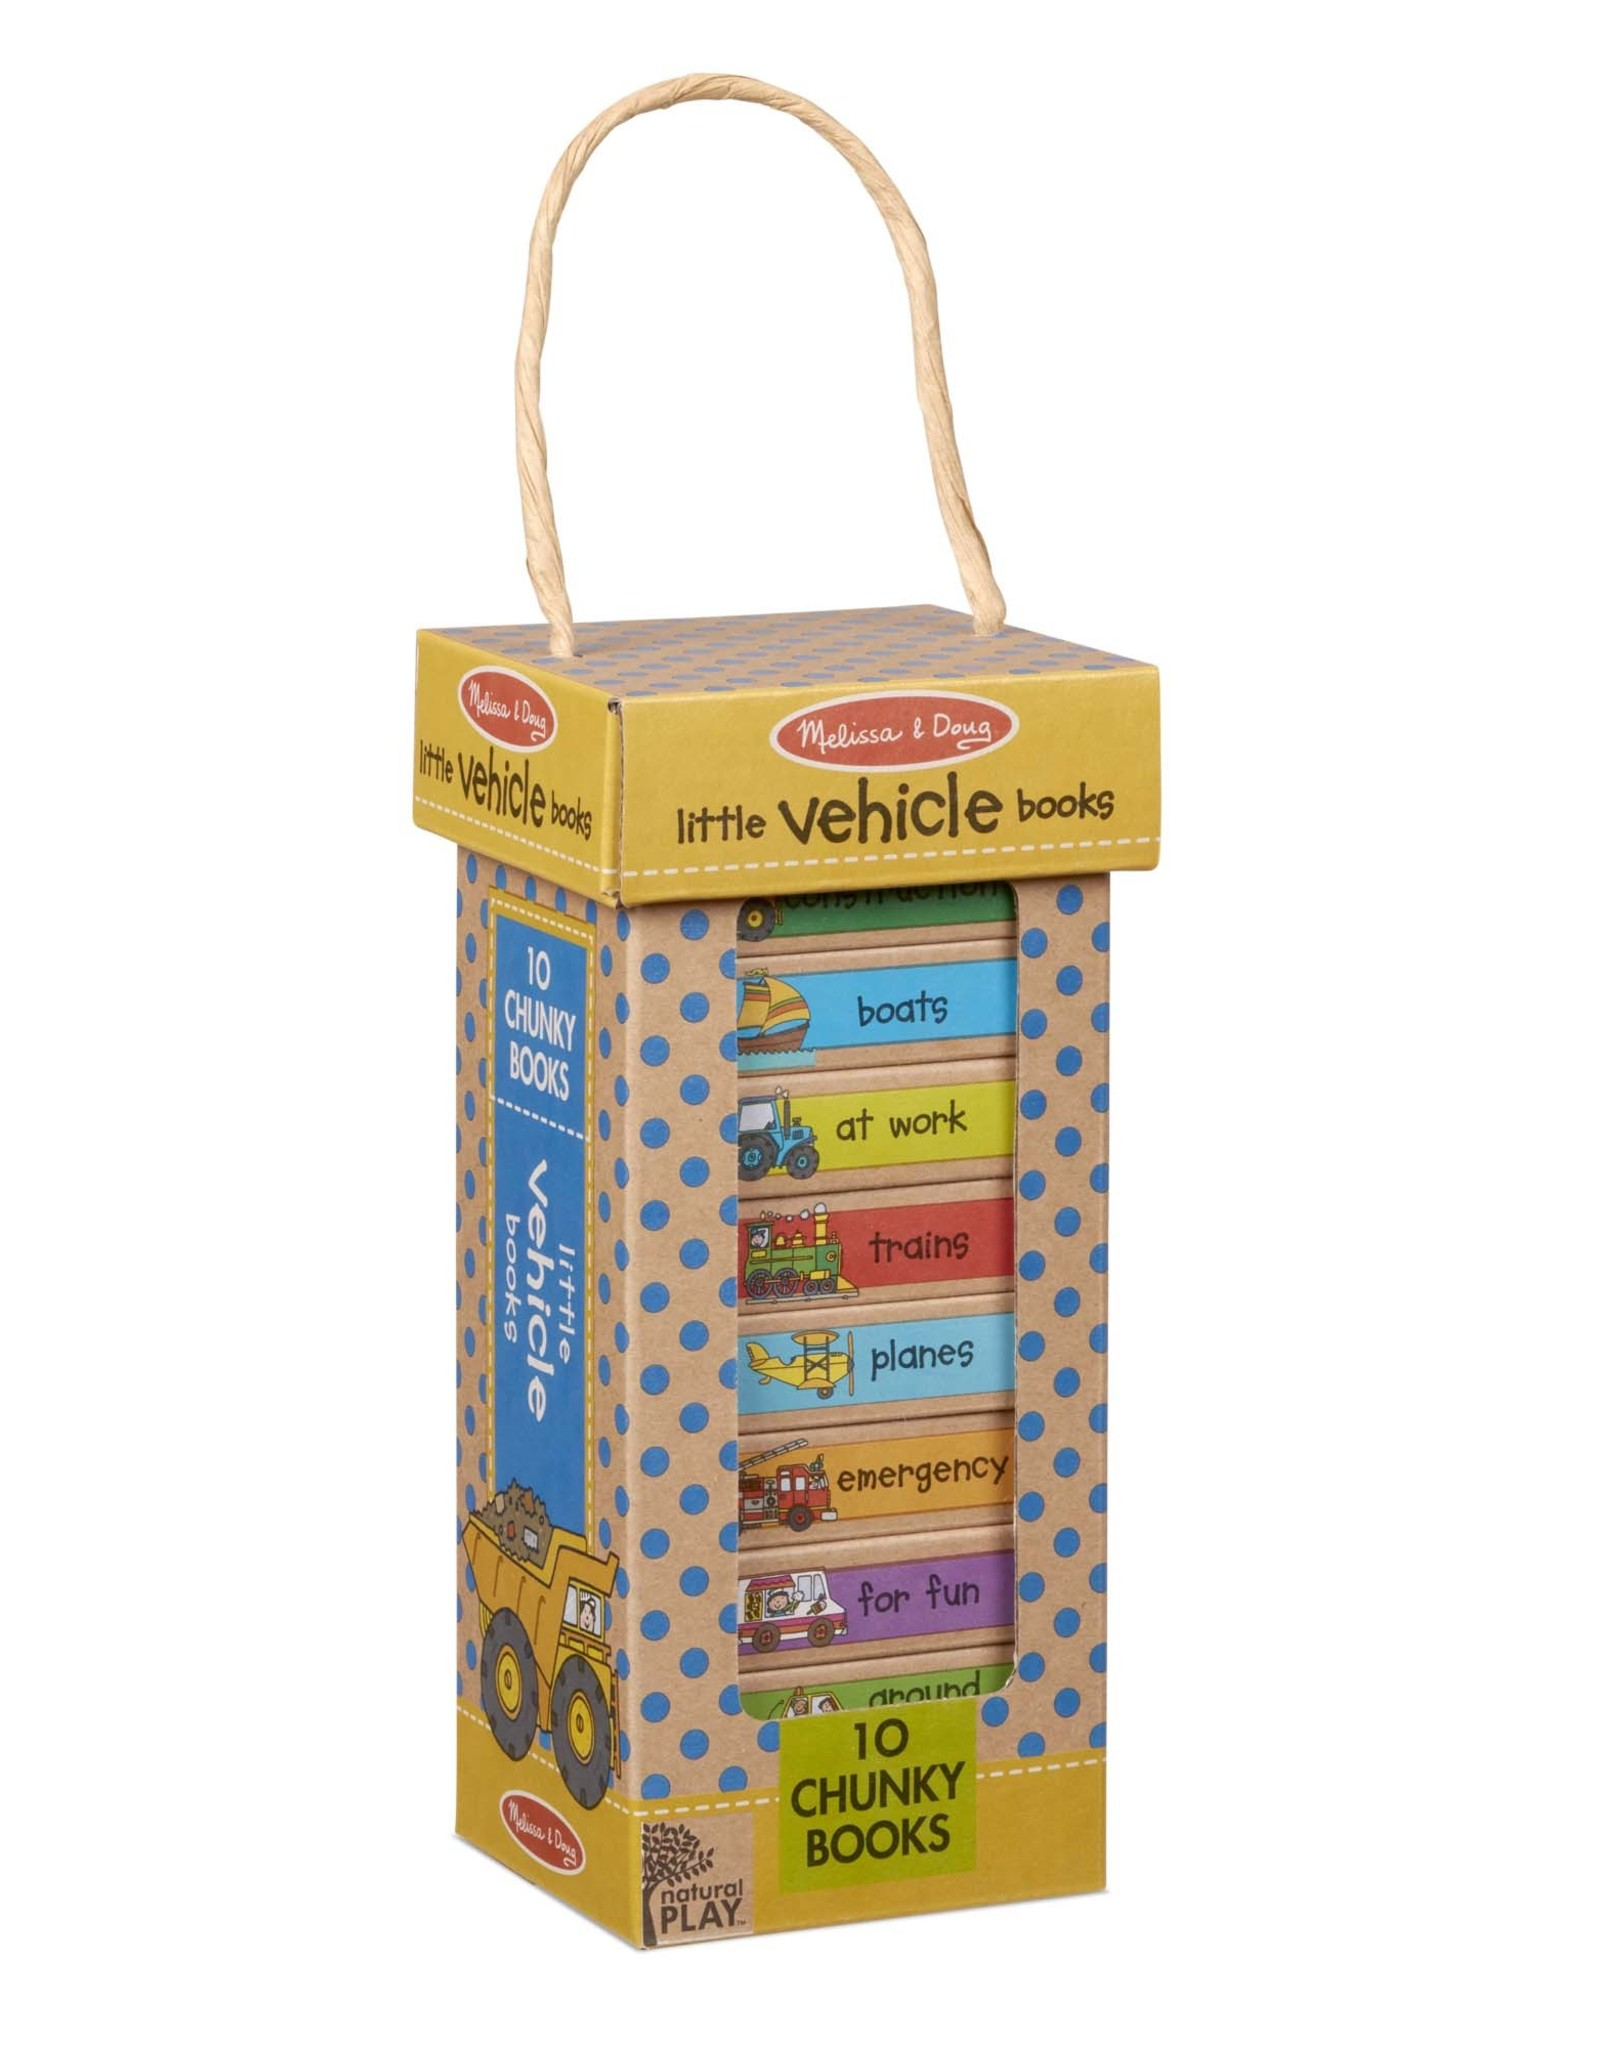 NP Book Tower: Little Vehicle